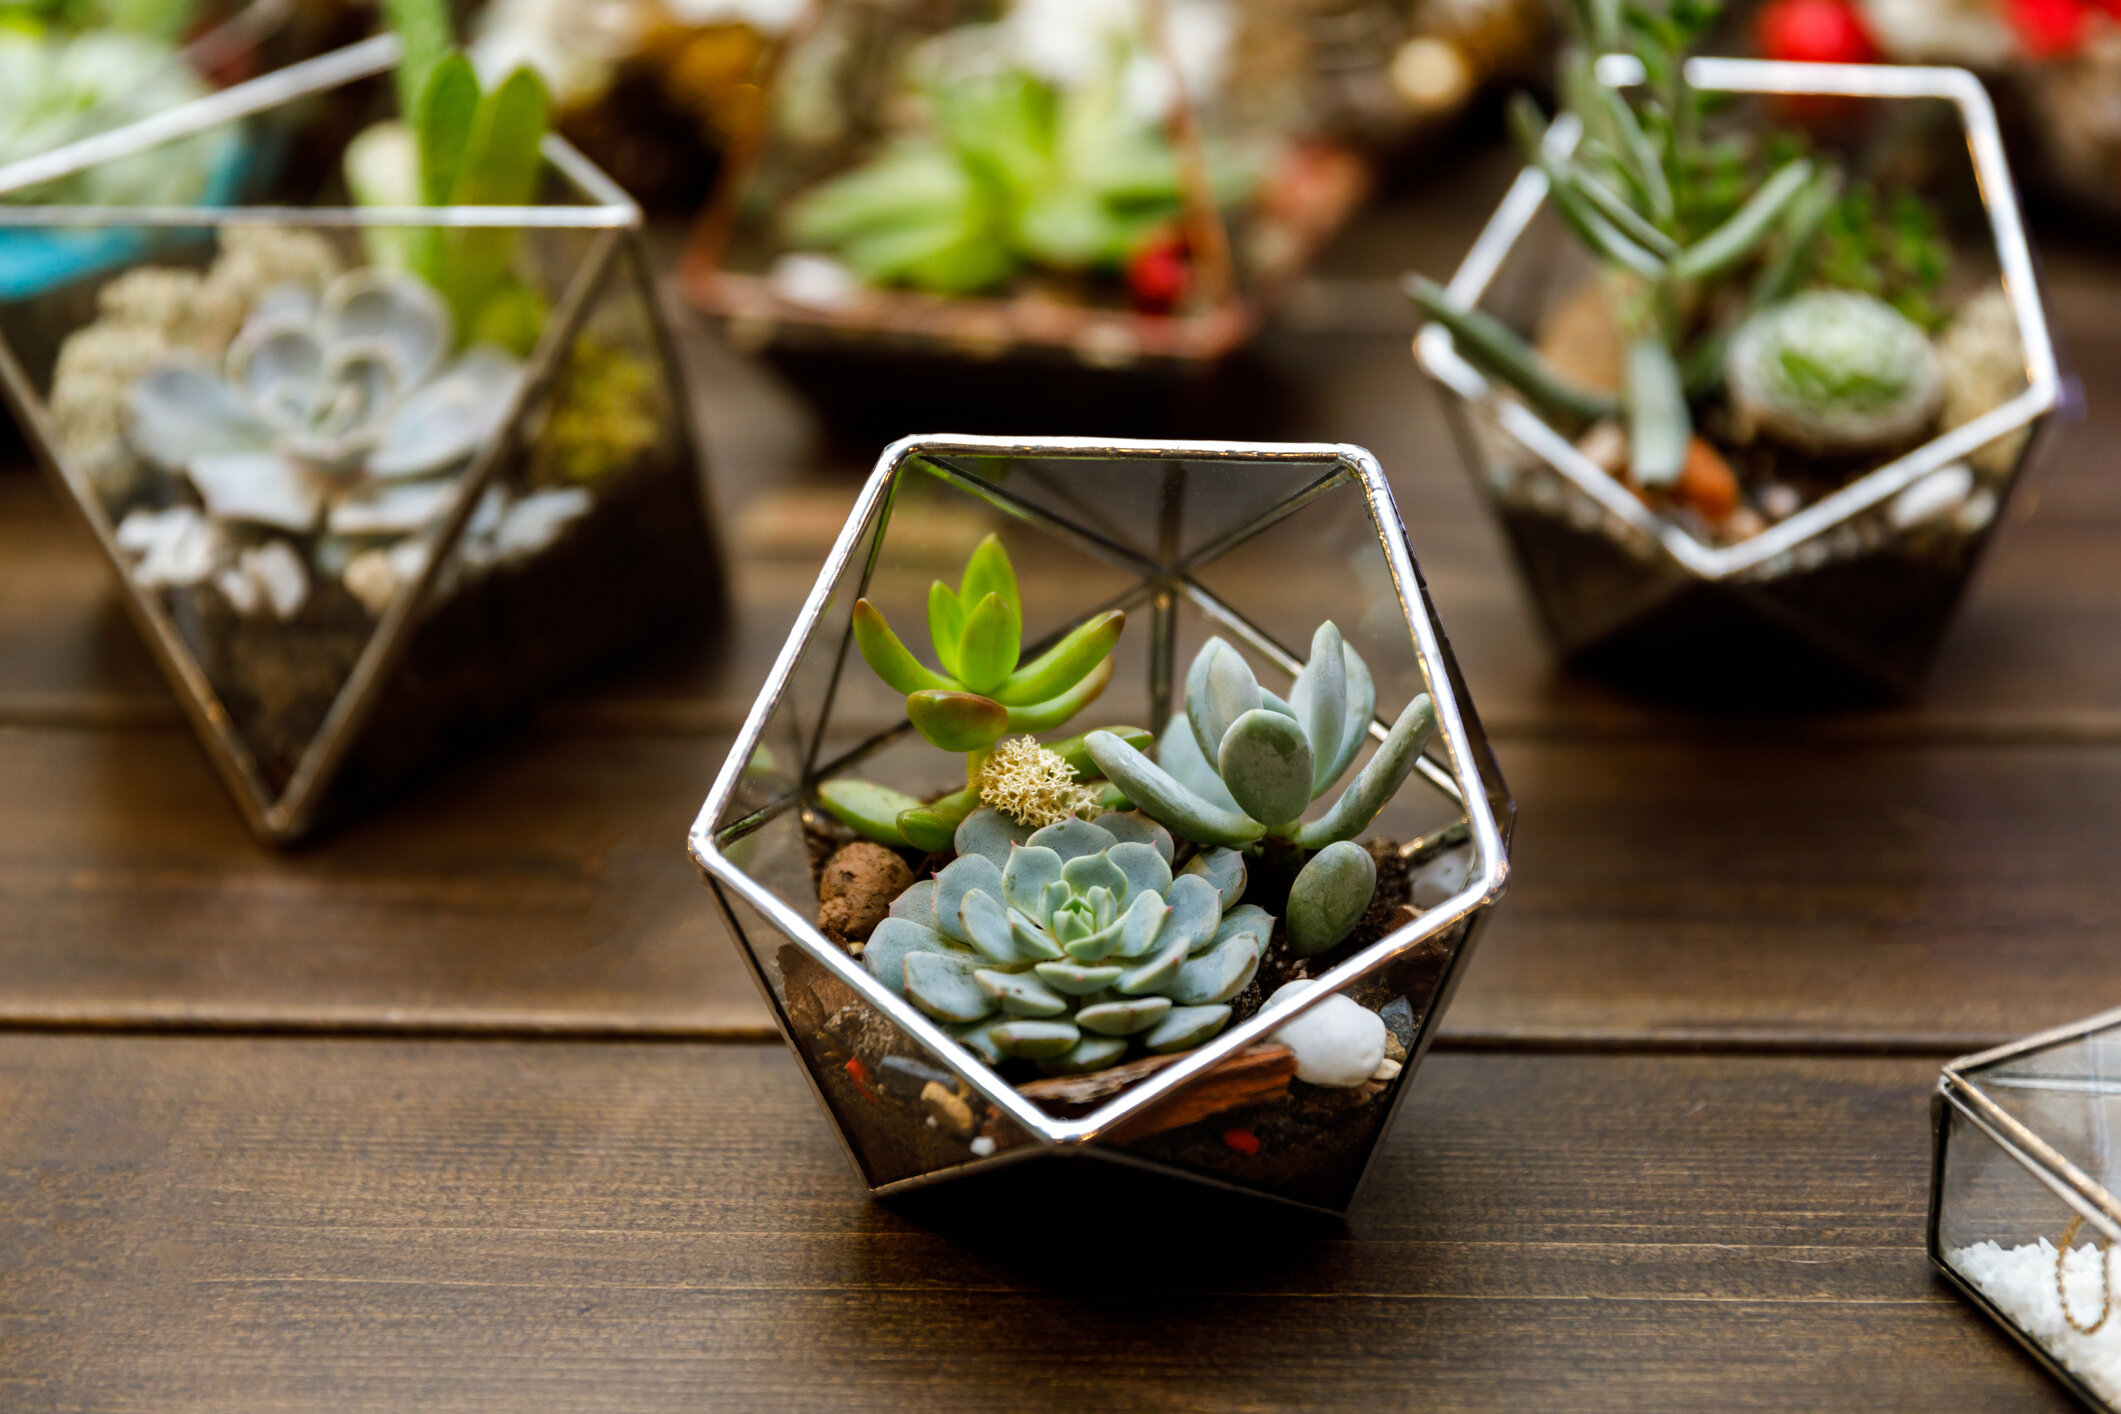 Terrariums can be any size. Small for office spaces, like these succulent ones that require little care. Great Secret Santa gifts.